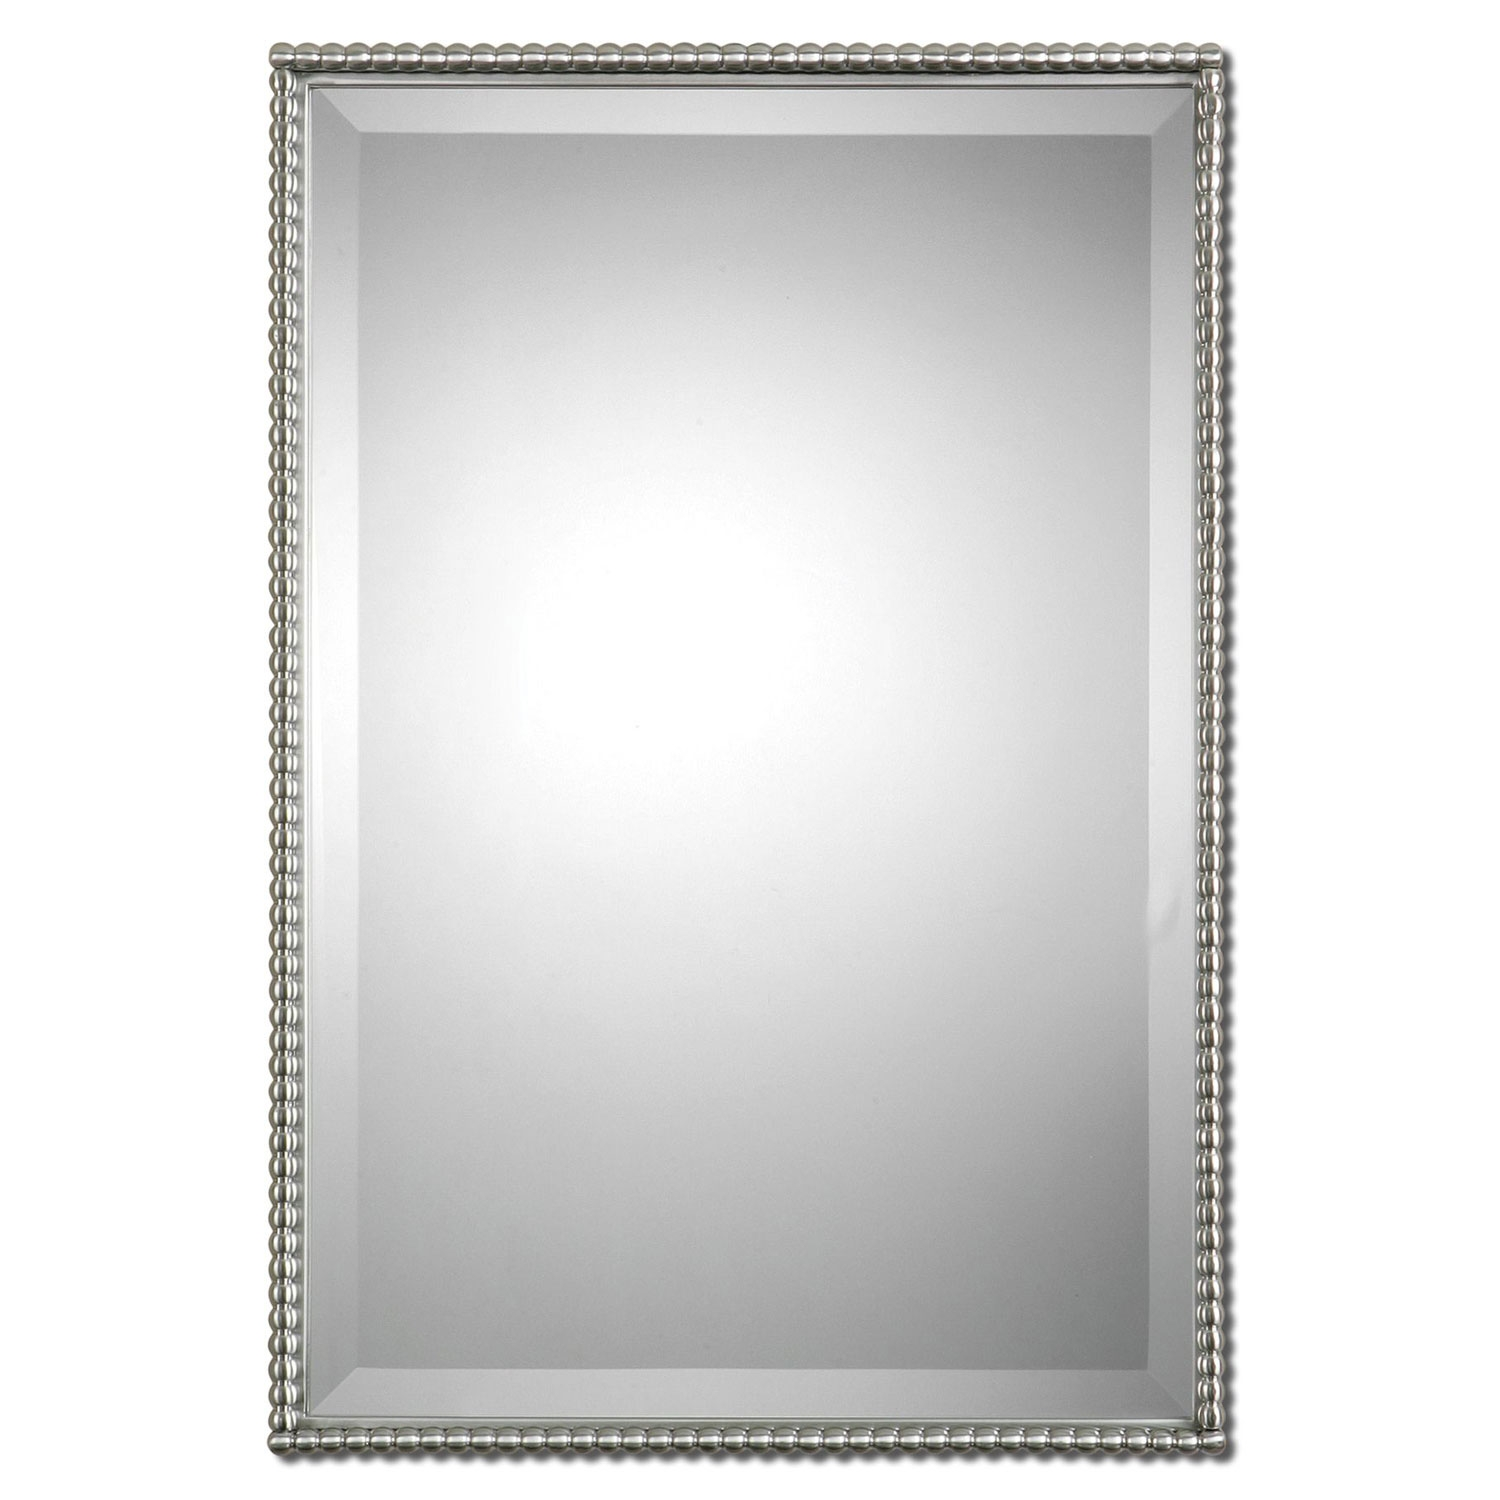 Bathroom Mirrors Brushed Nickel Frame